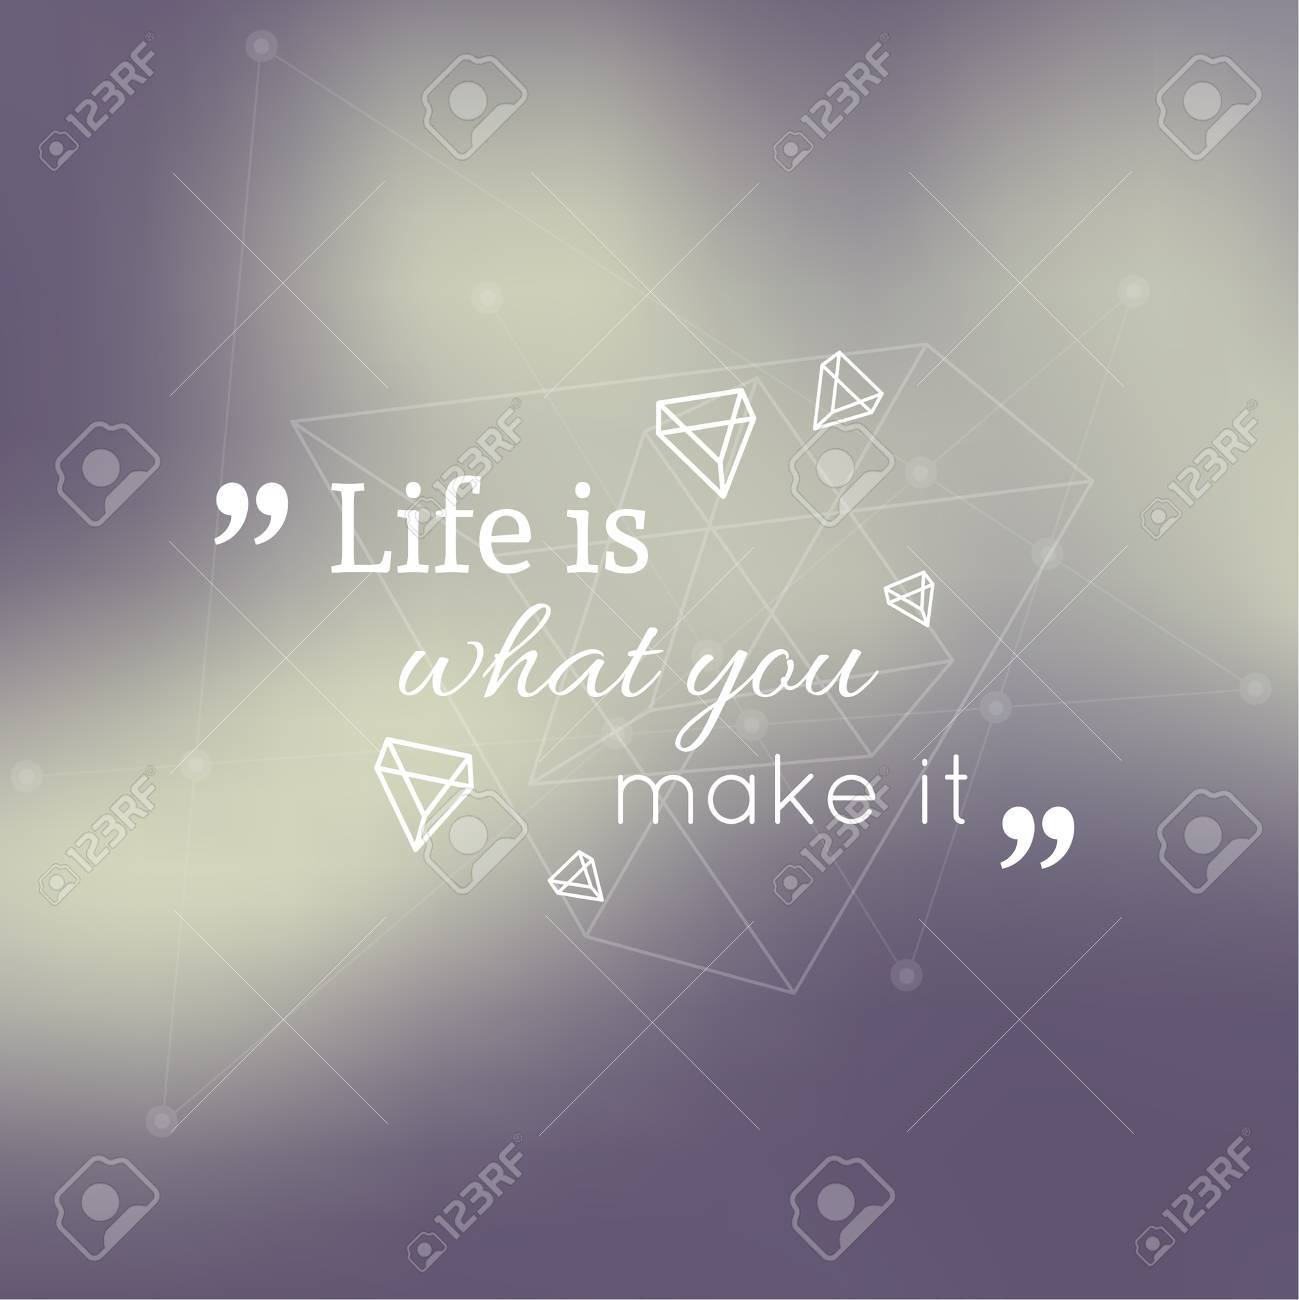 Wise Sayings And Quotes About Life Abstract Neat Blurred Backgroundinspirational Quotelife Is